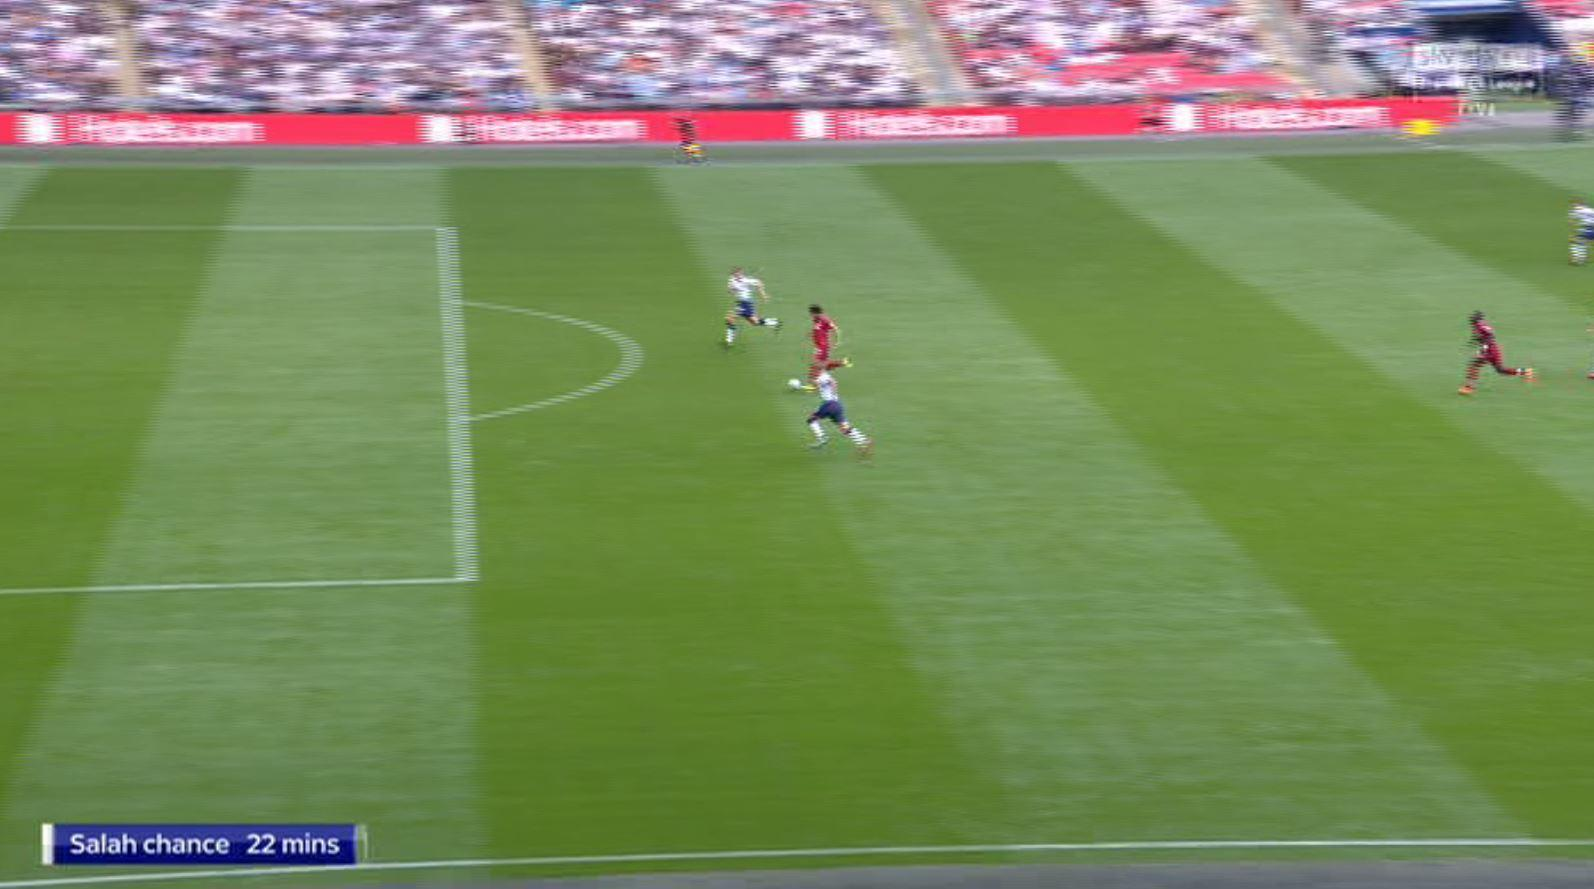 Salah raced through for a one-on-one